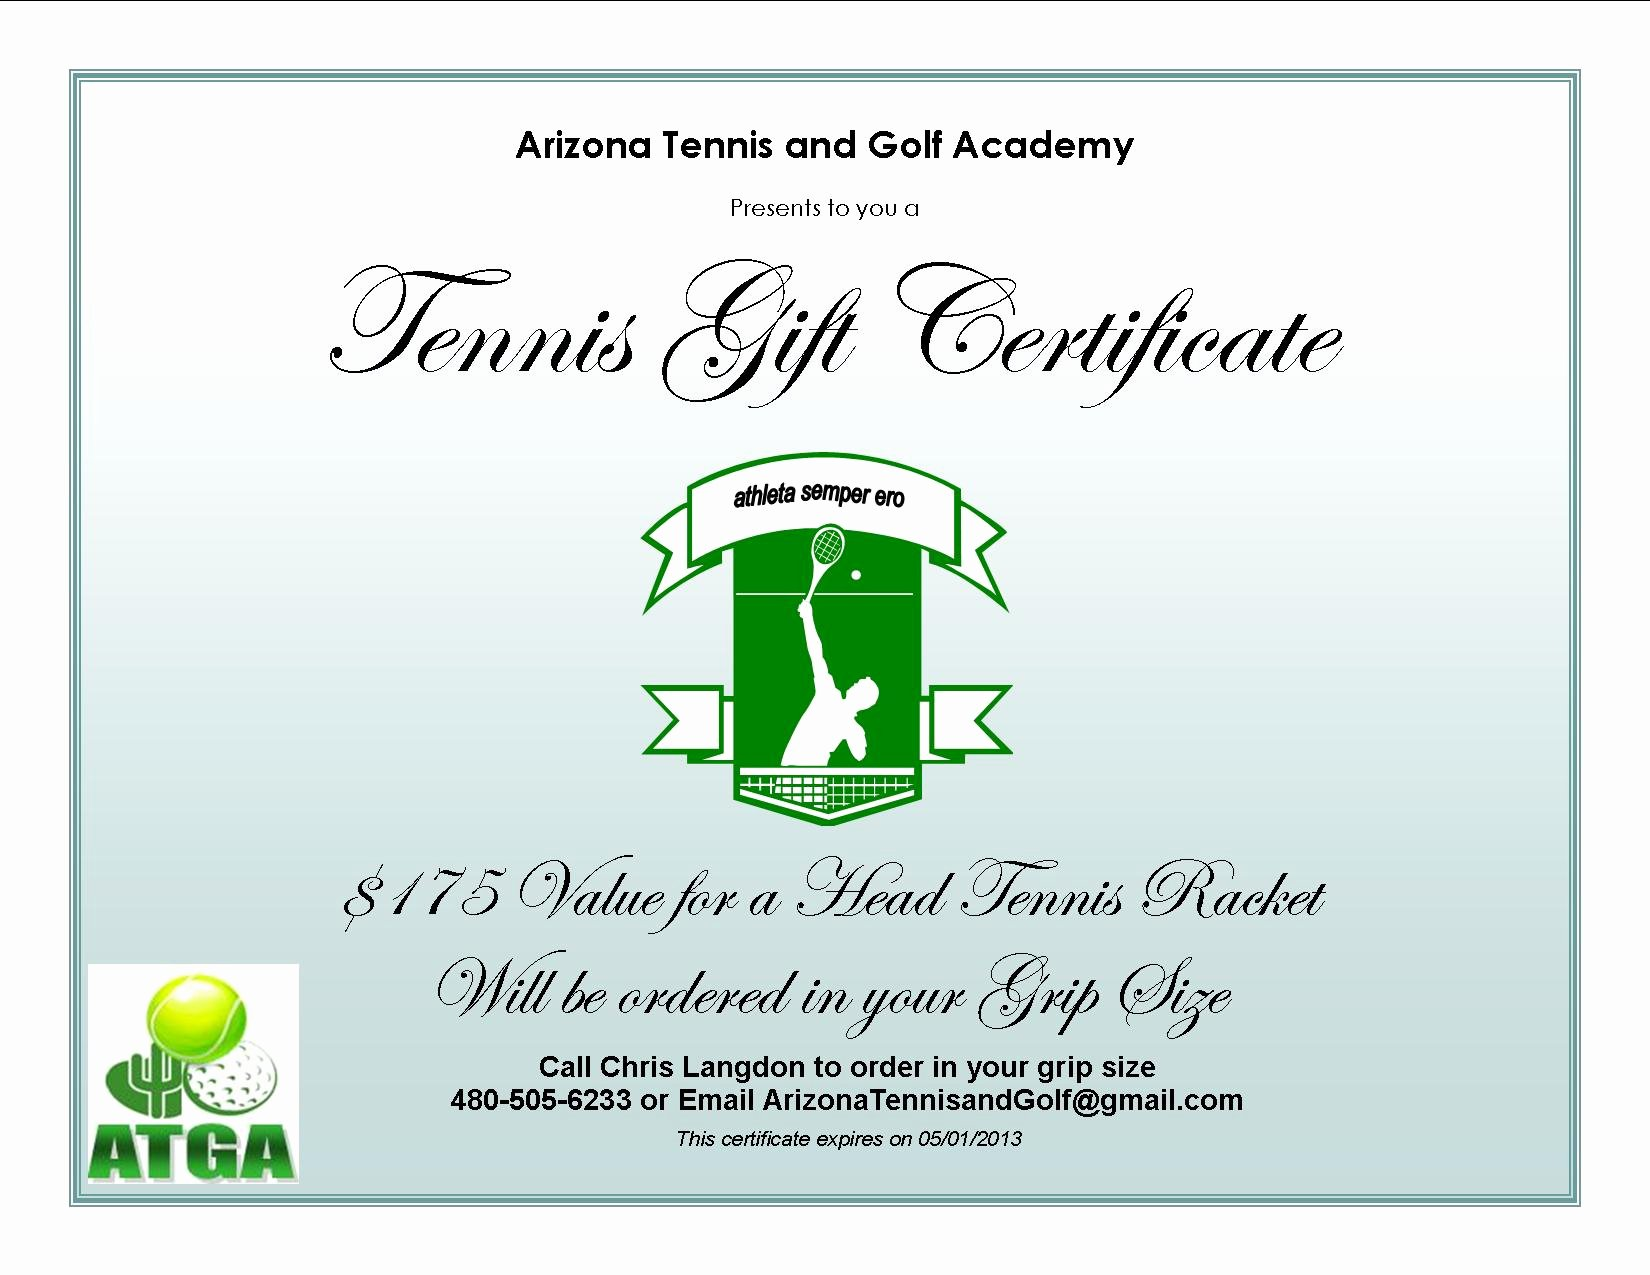 Golf Gift Certificate Template Free Awesome Arizona Tennis and Golf Academy Current Tennis Specials